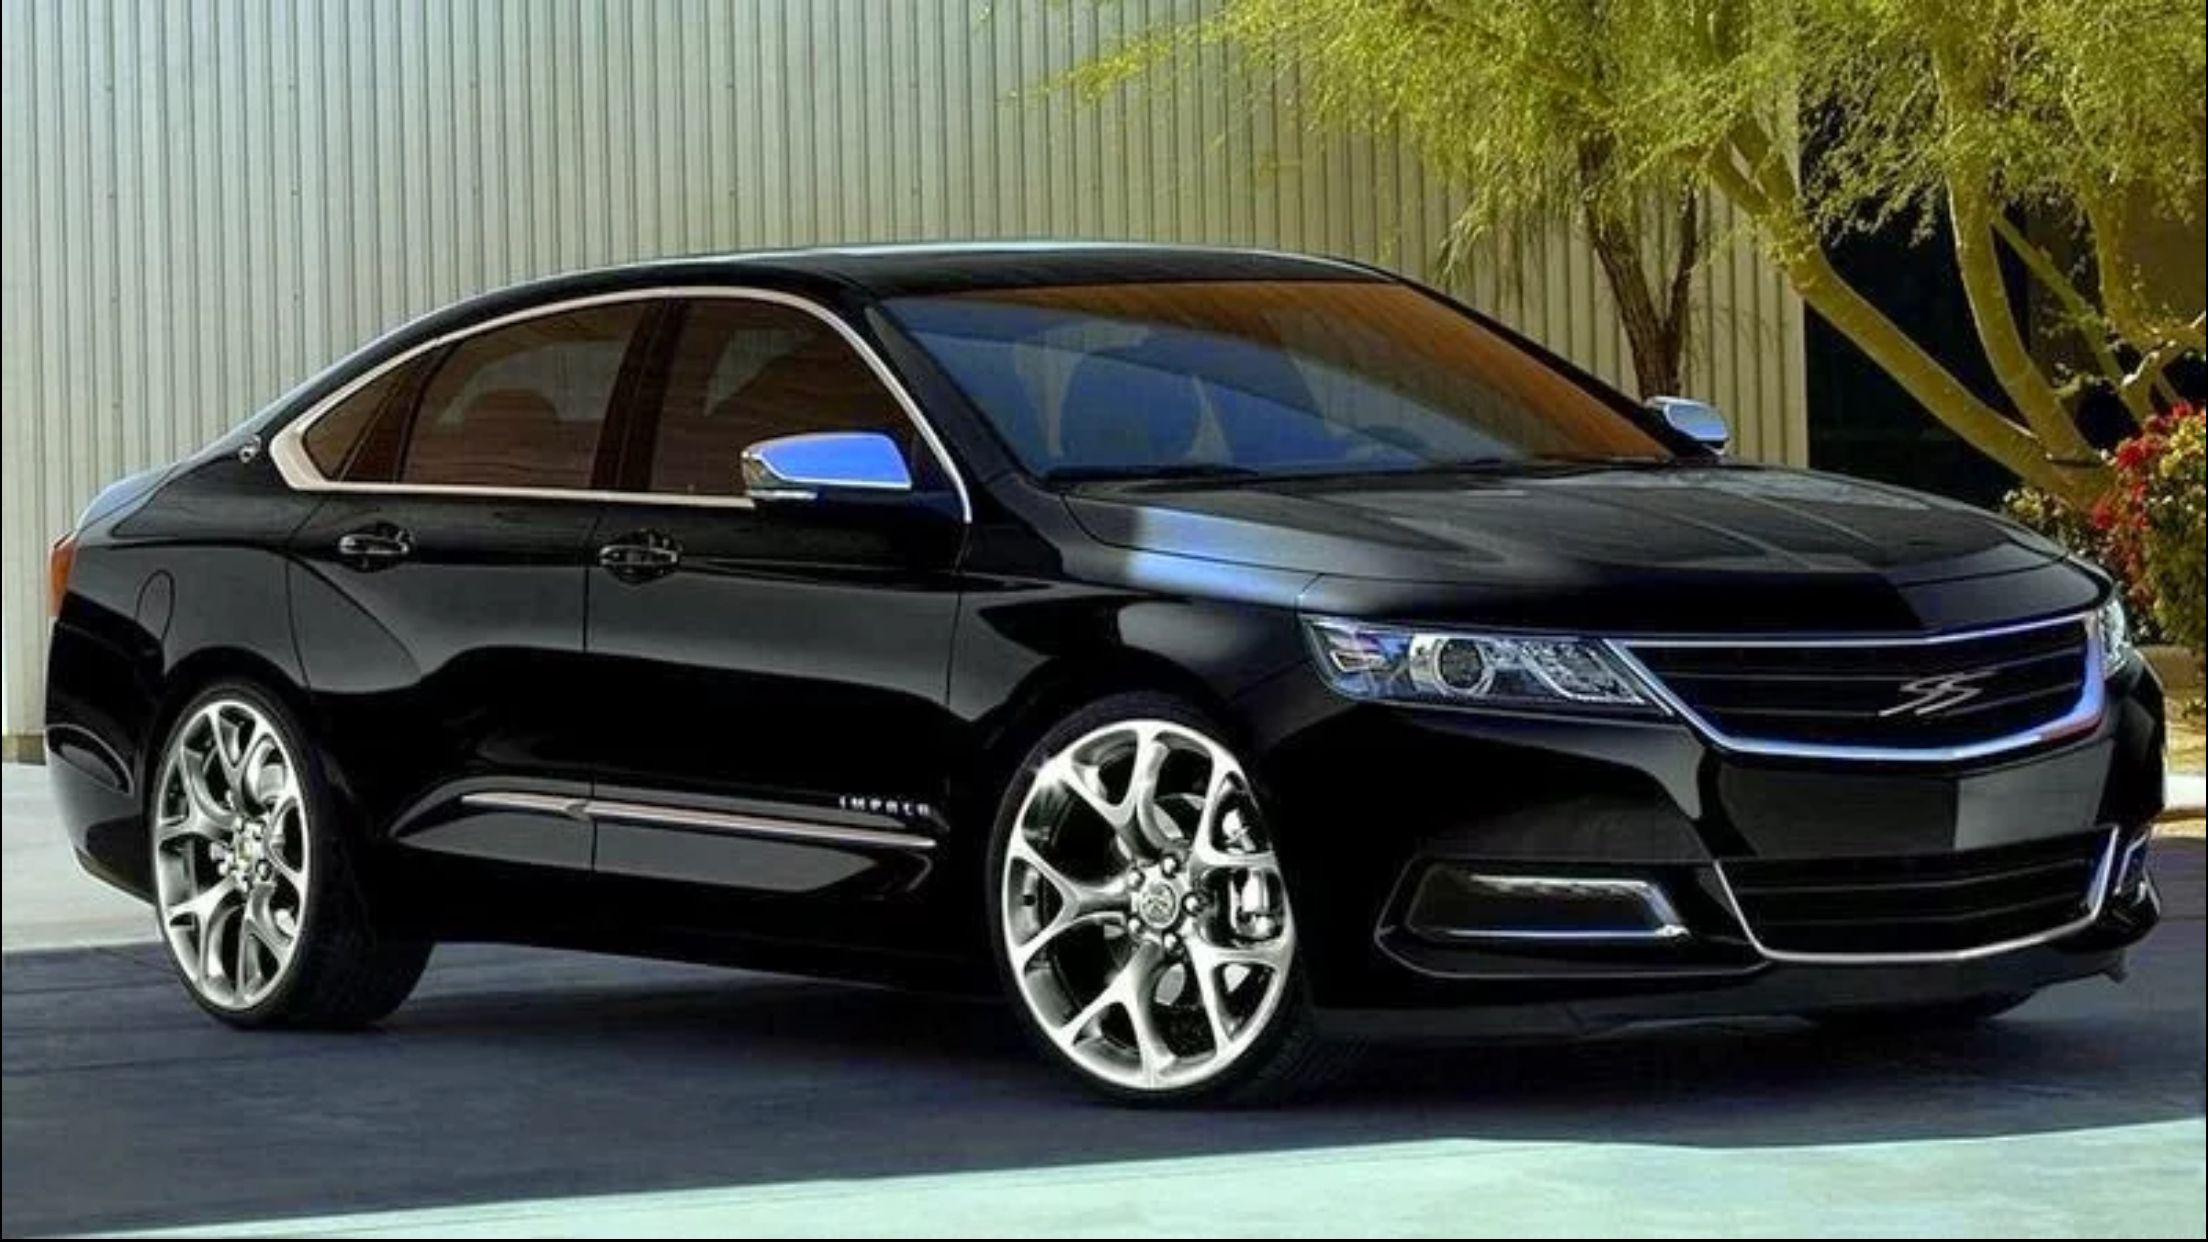 2016 Impala Ss Might Have To Get One